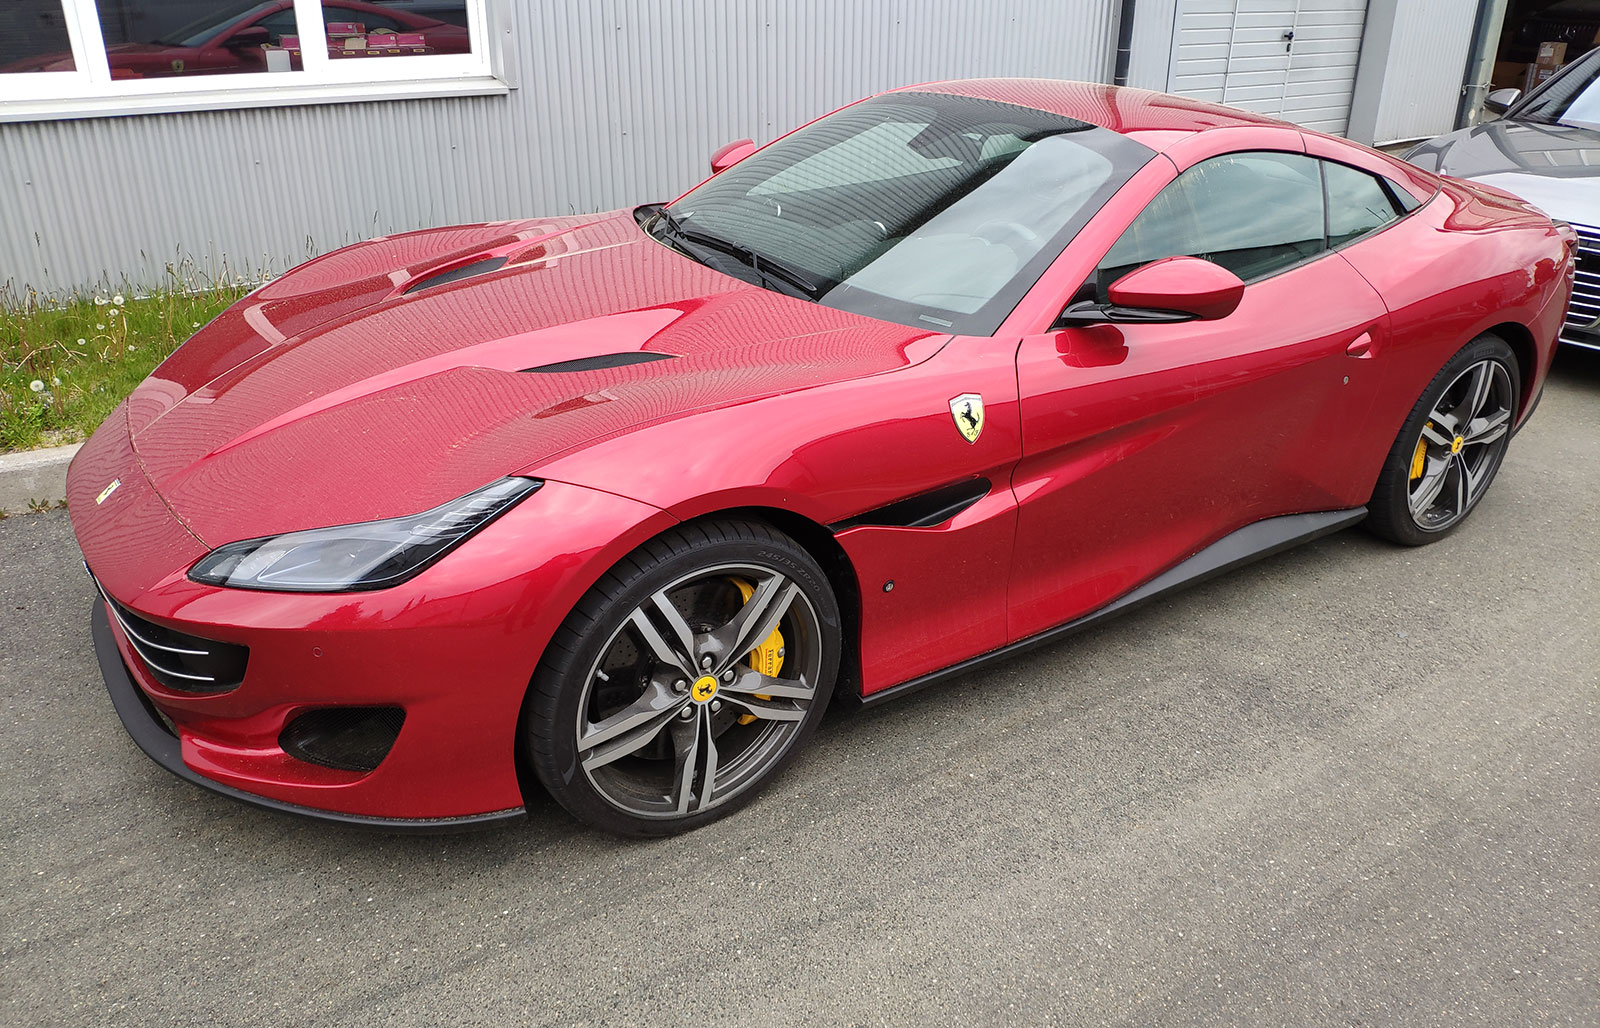 Ferrari Portofino - the Italian gets a few extra horses